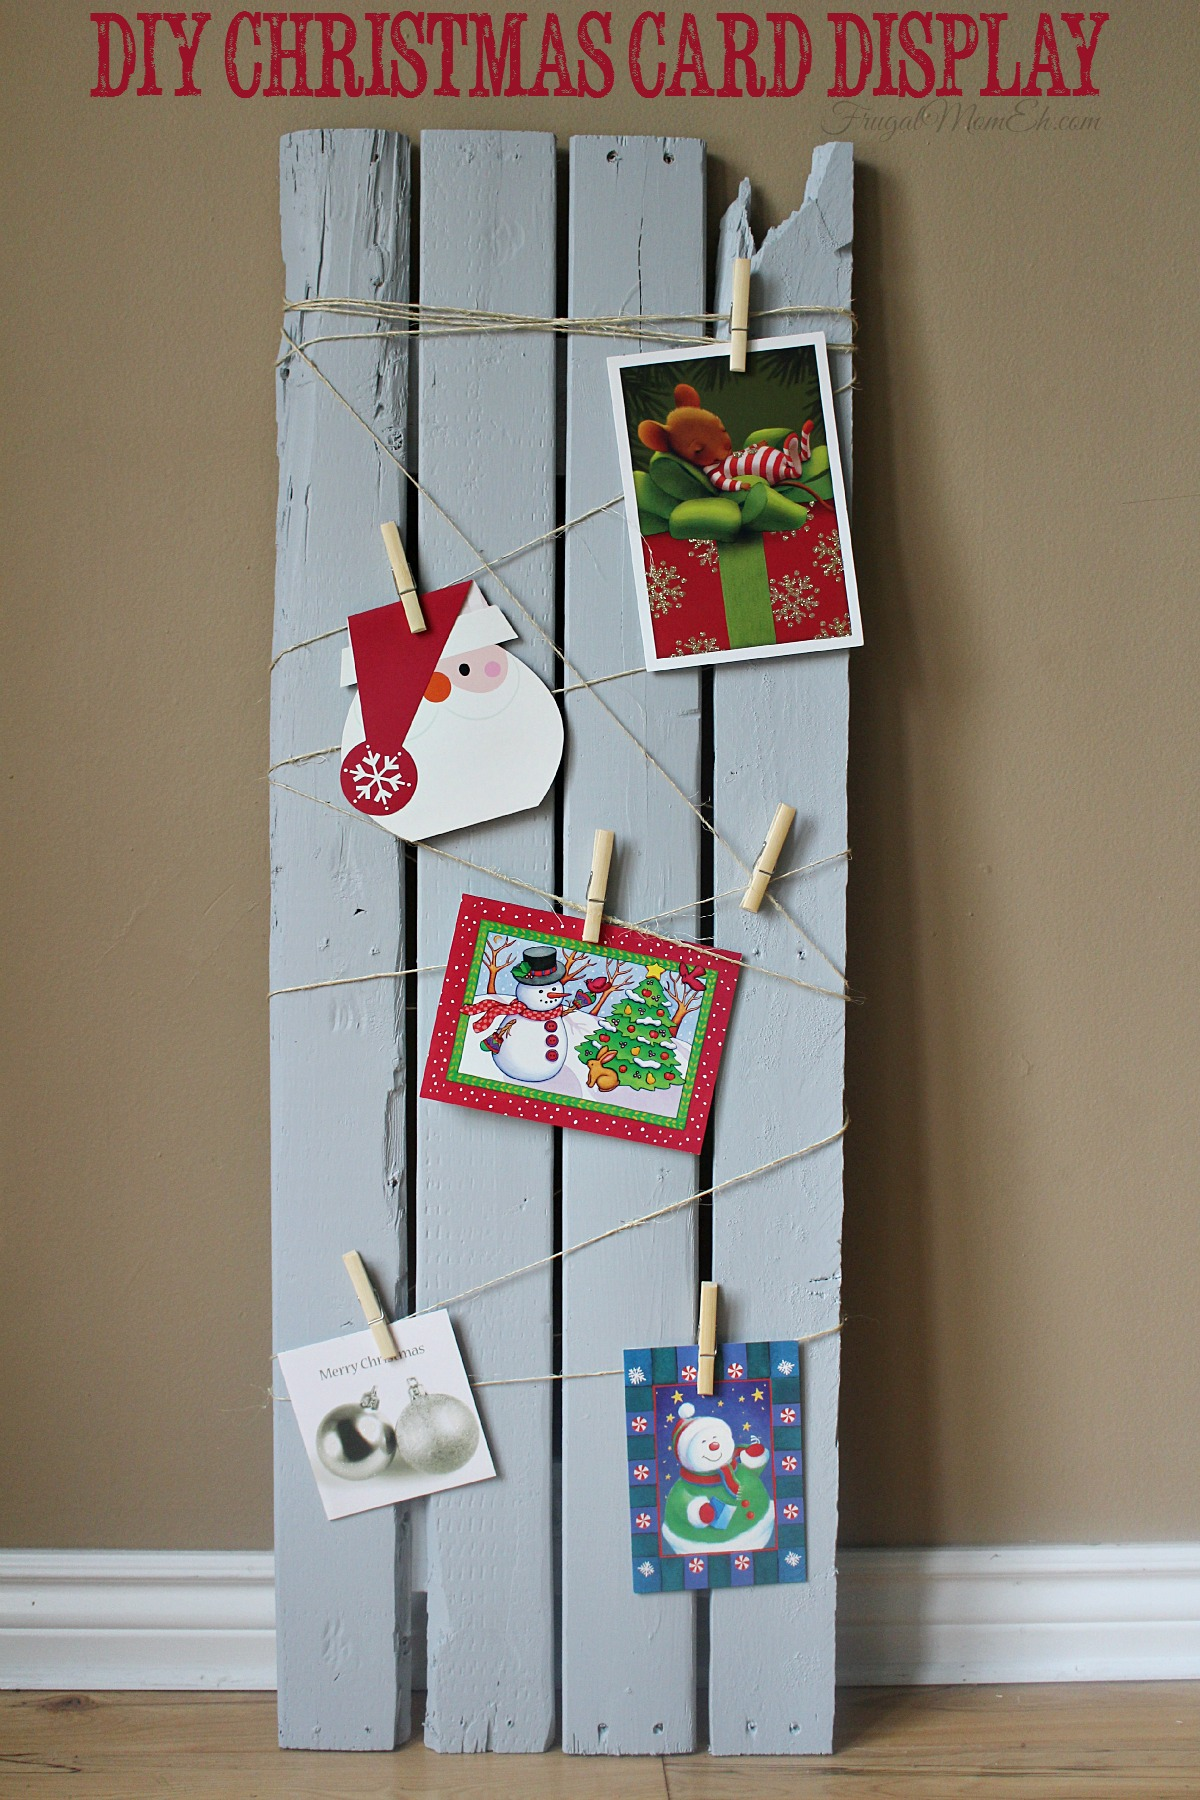 10 Unique Ways to Display your Christmas Cards